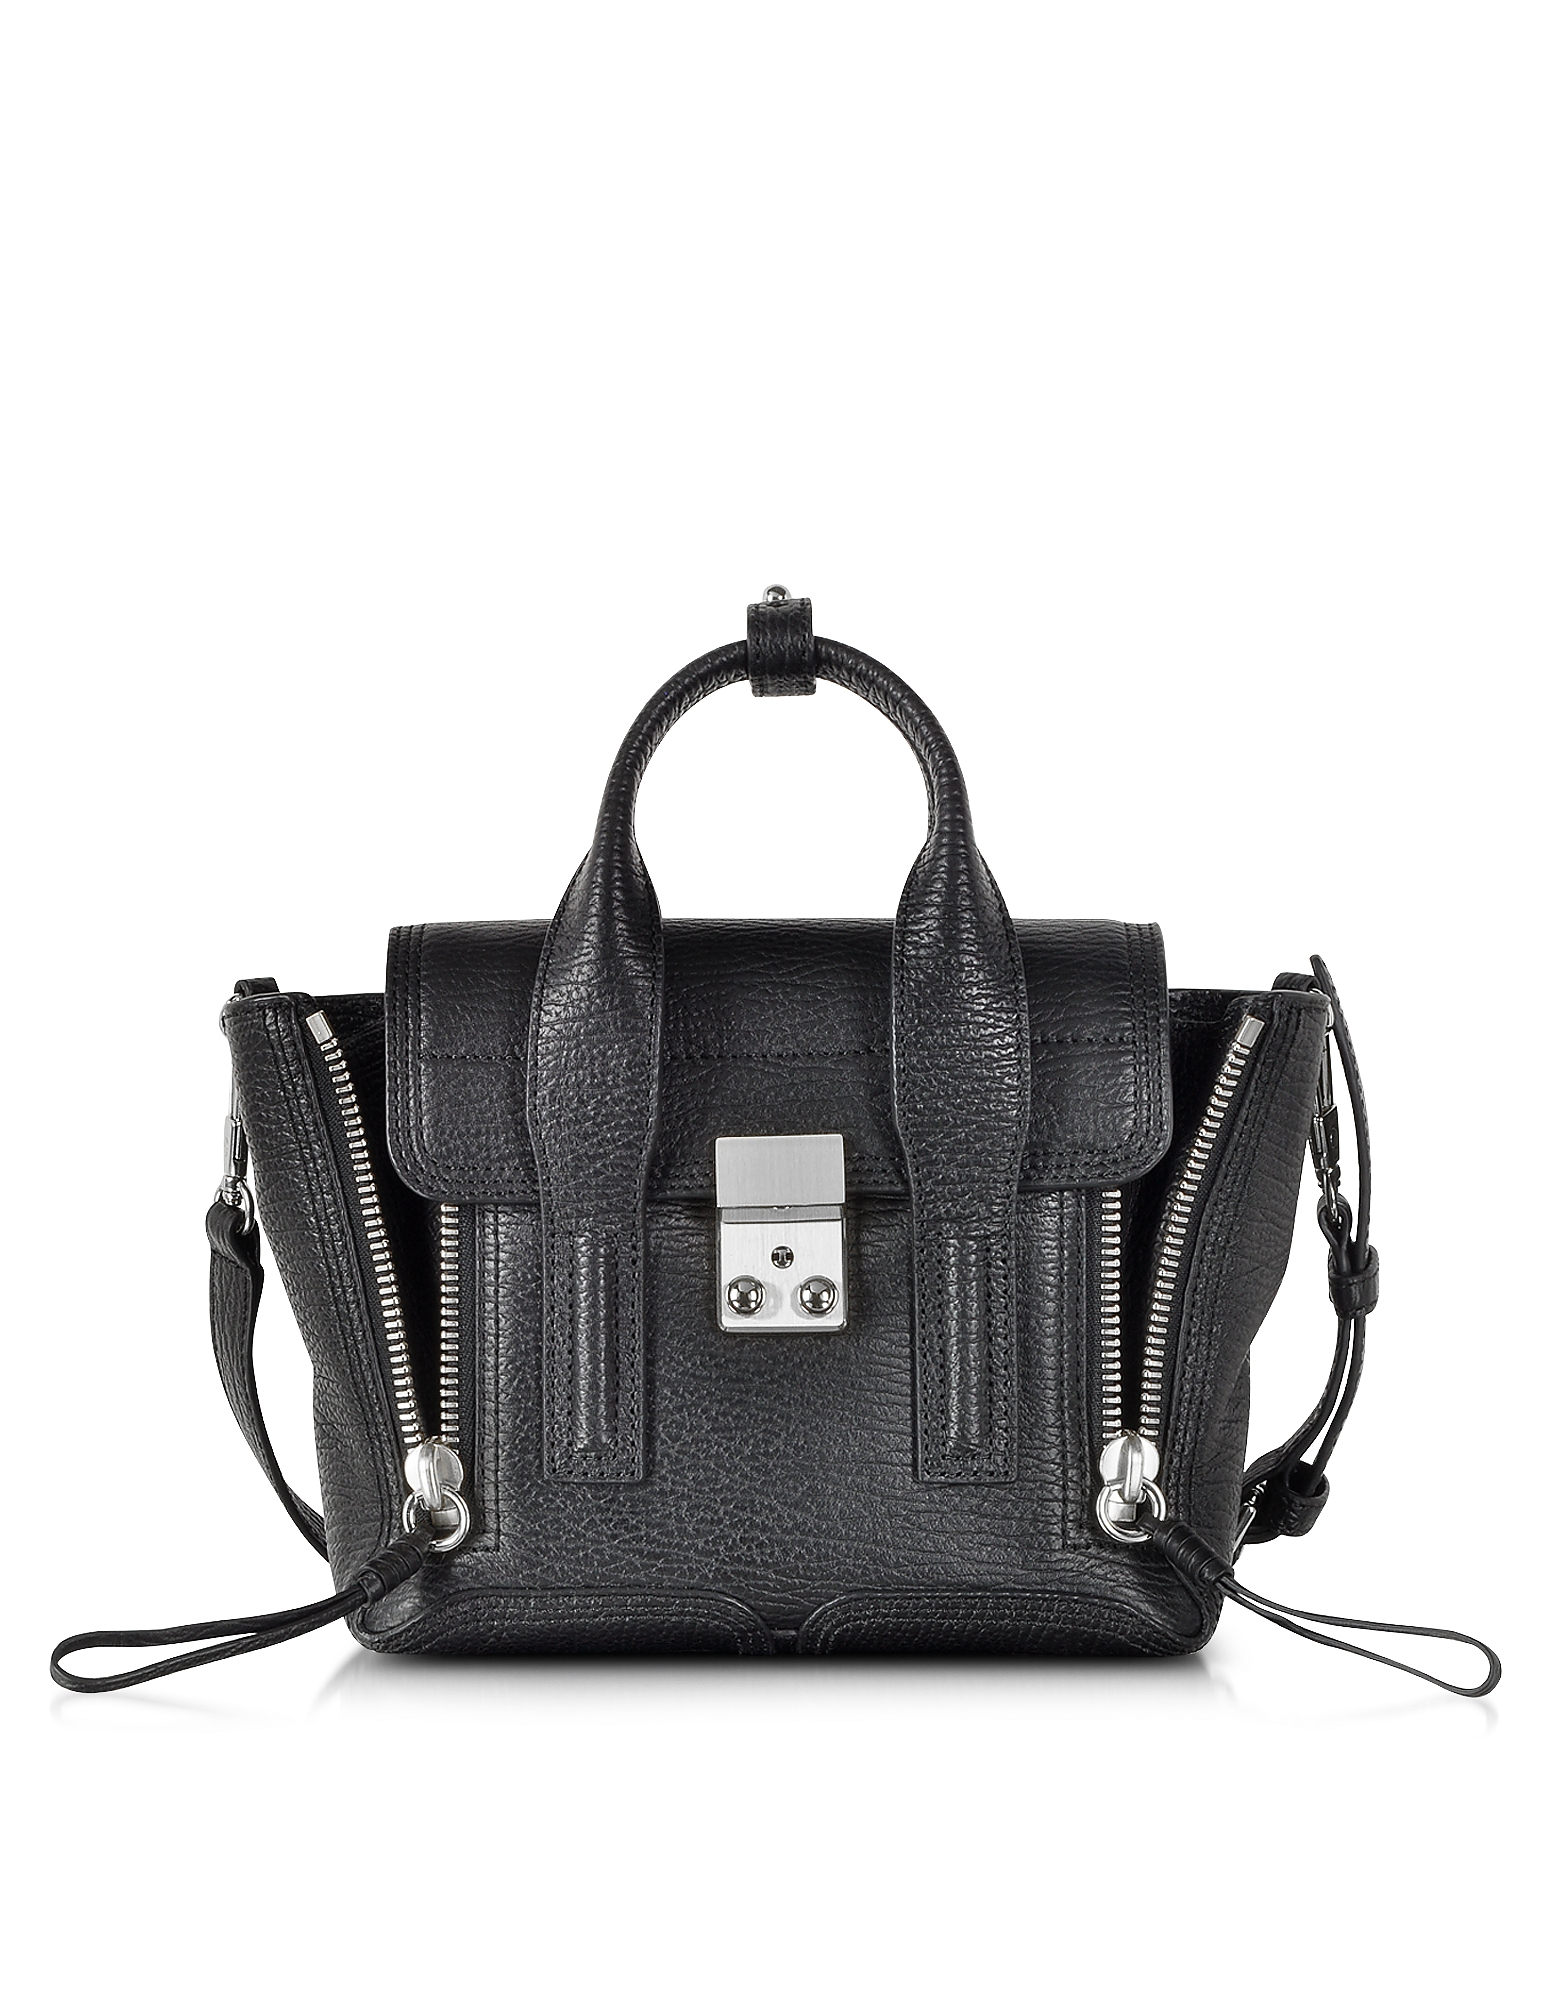 Black Pashli Mini Satchel